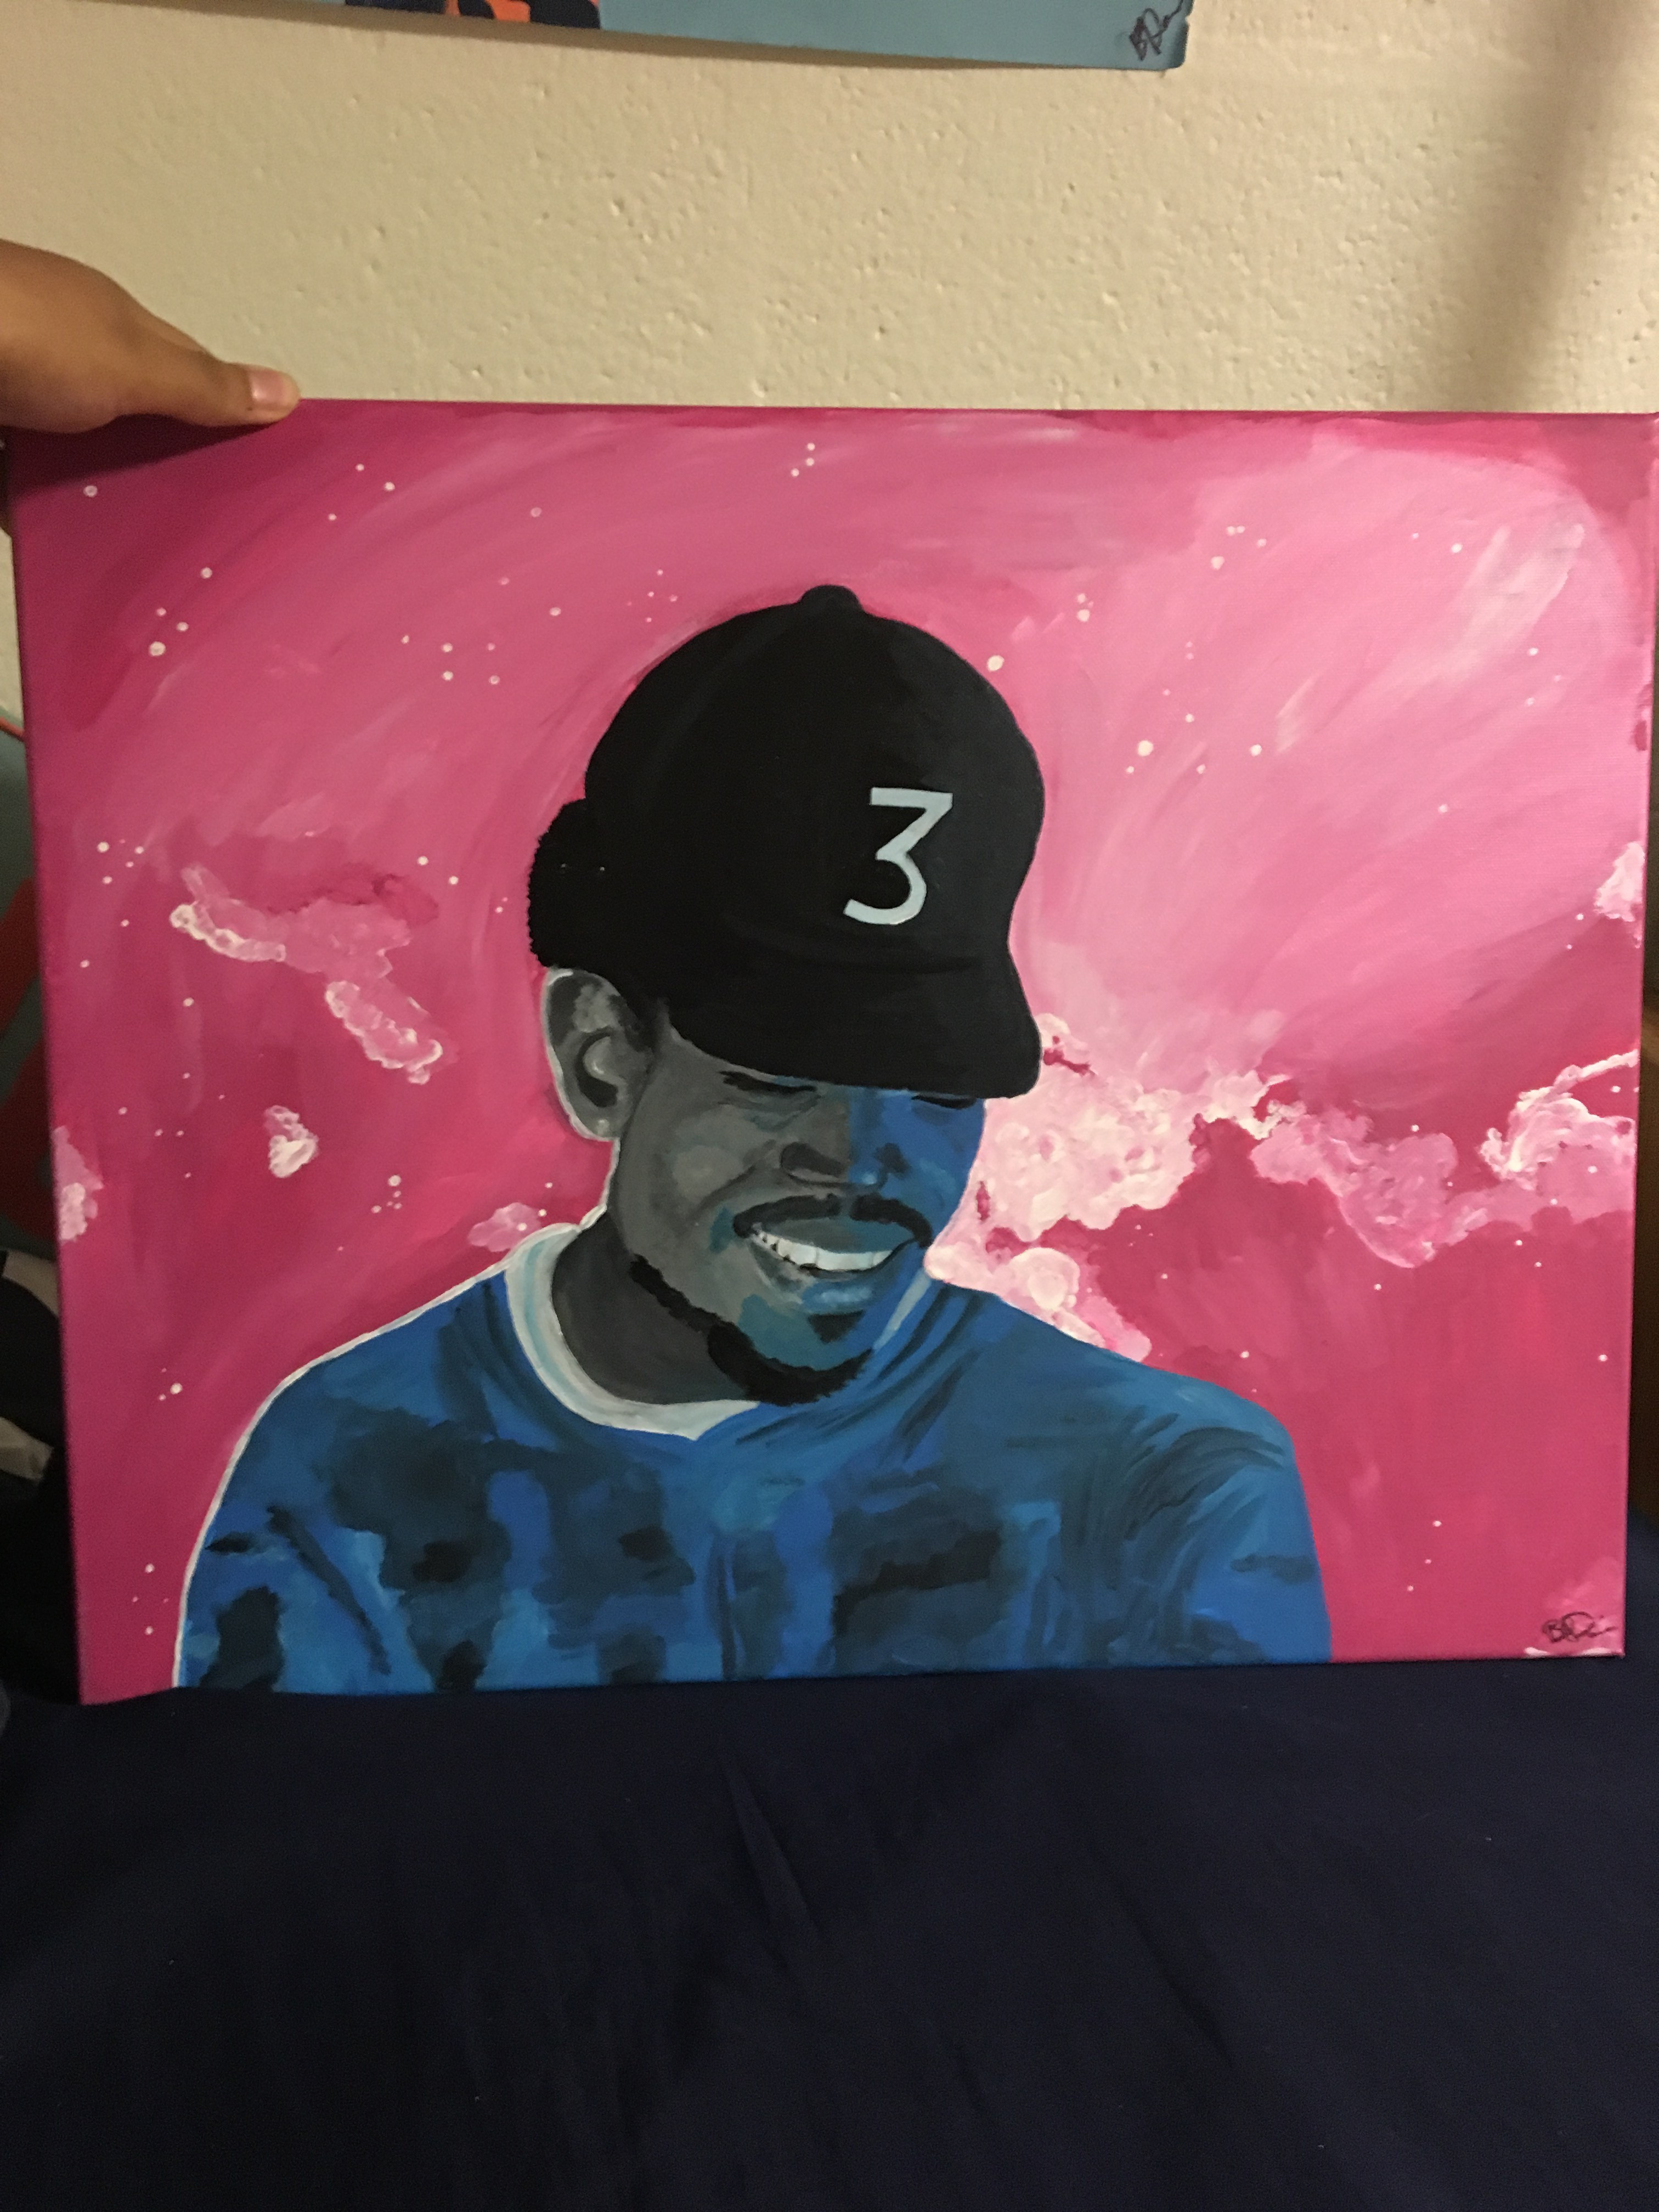 Chance The Rapper The Coloring Book  Chance the Rapper Coloring Book mixtape cover